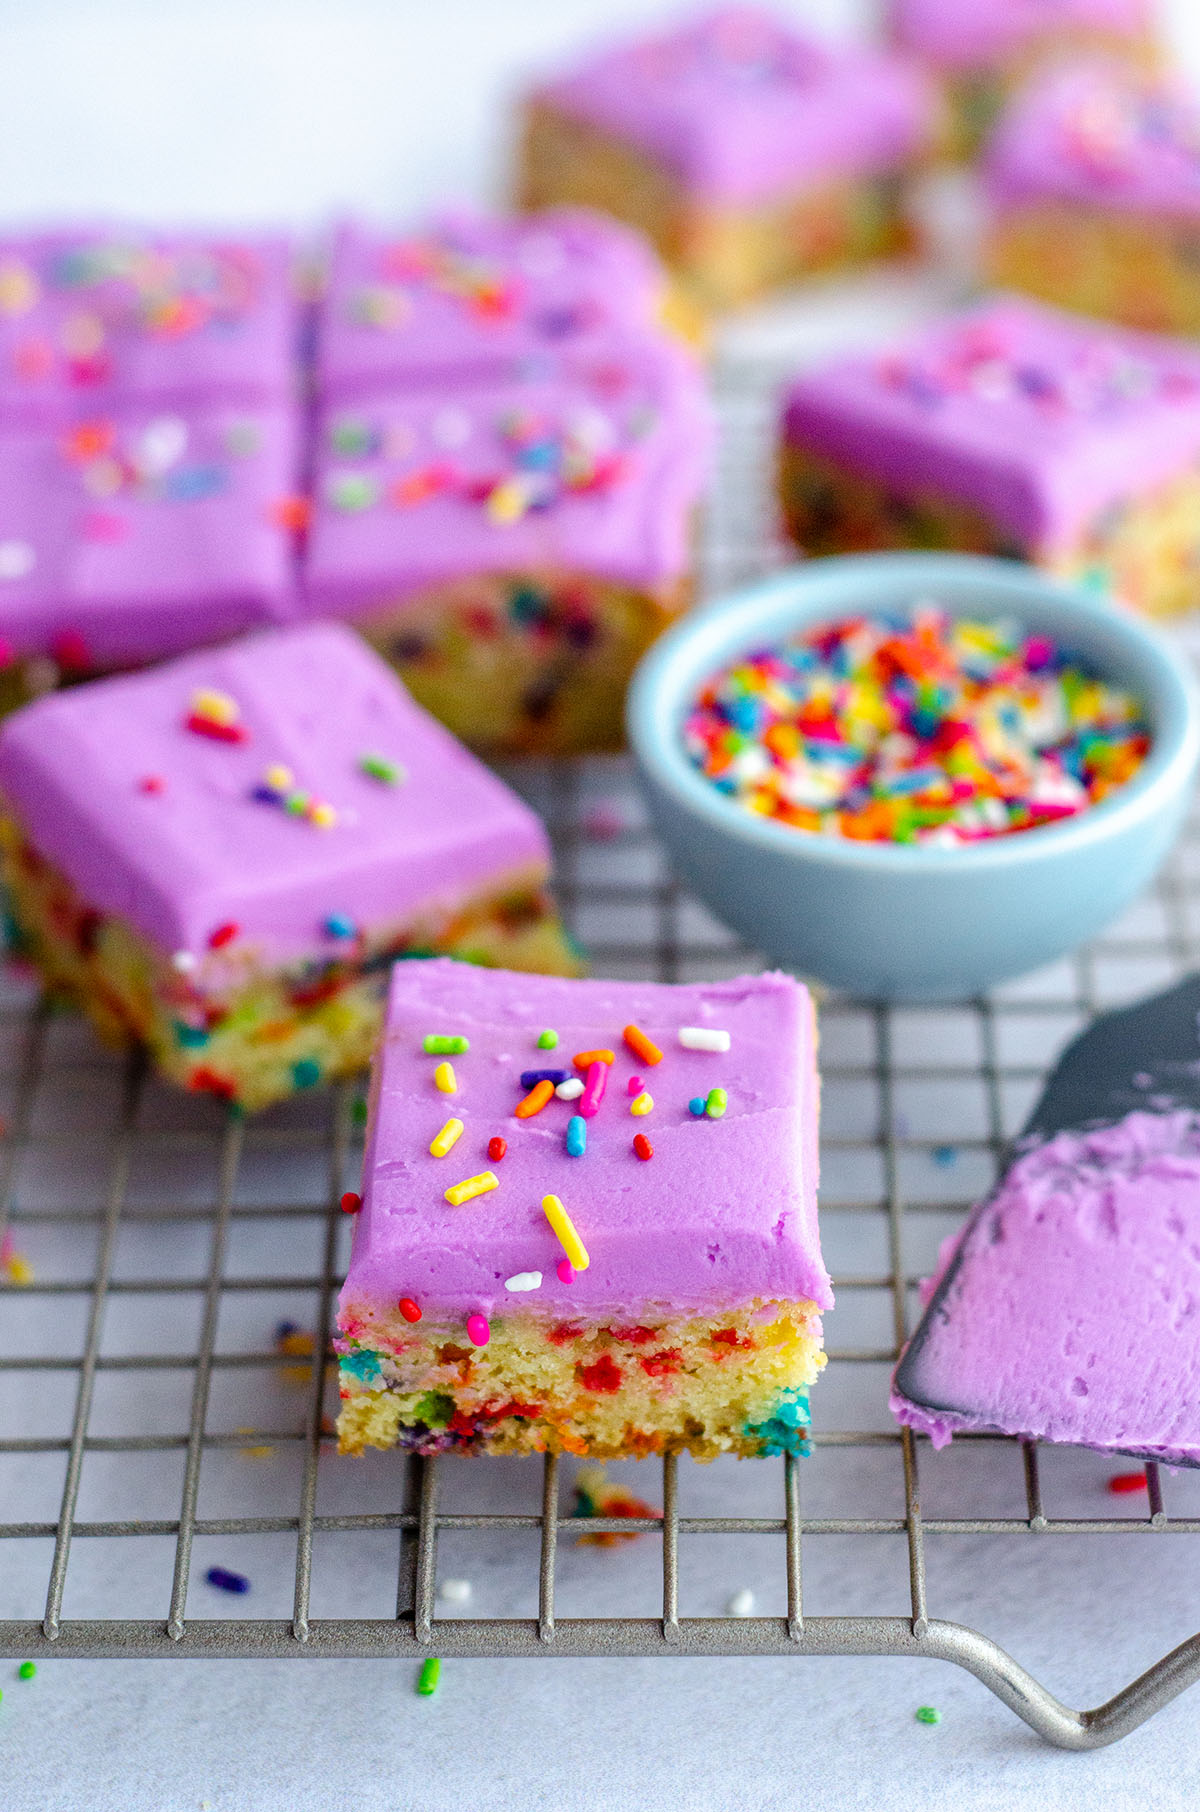 Soft and buttery sugar cookies in easy-to-serve bar form. Top with a colorful buttercream and rainbow sprinkles for an extra pop of color!